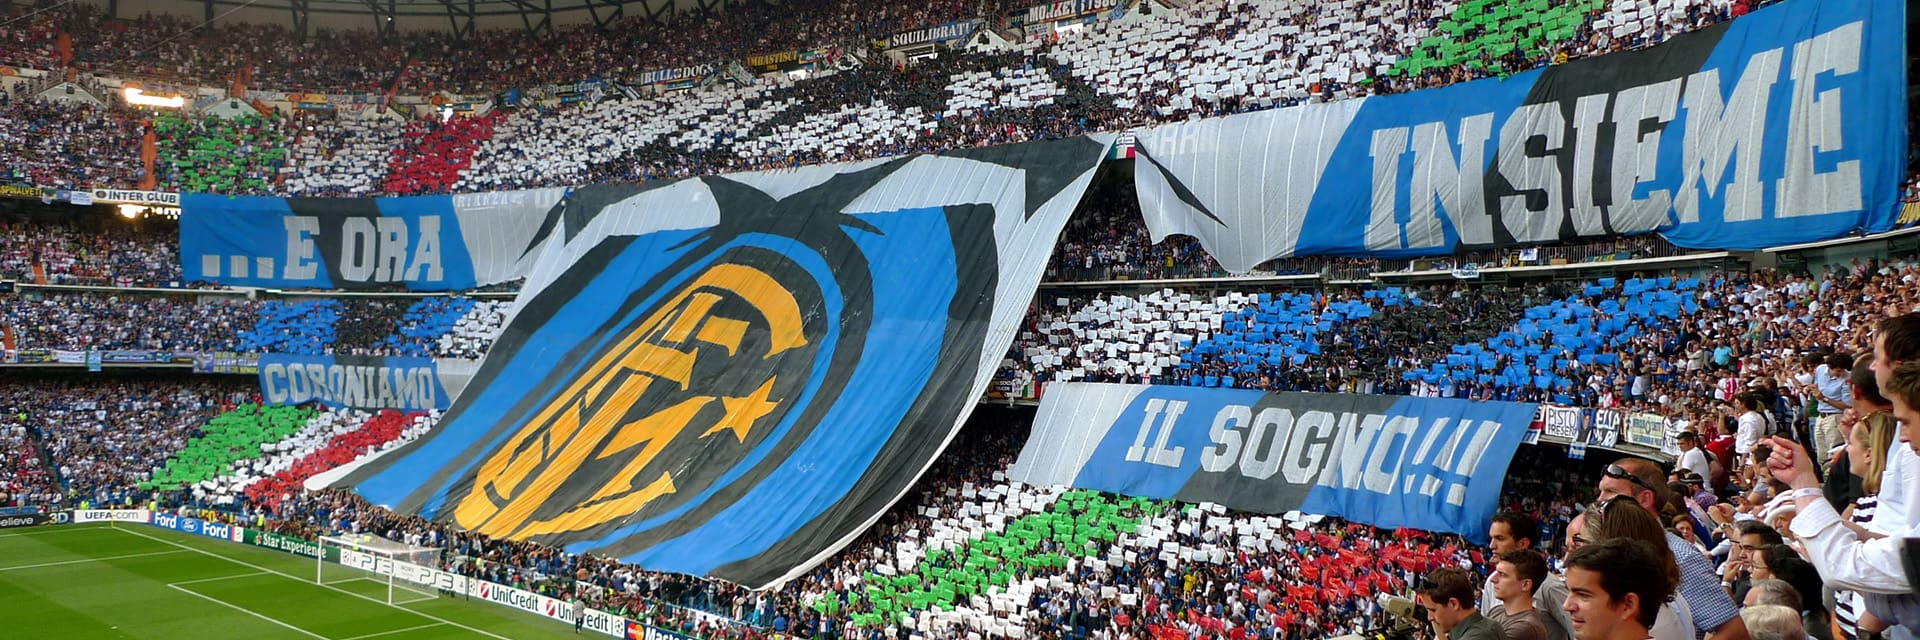 Inter Milan - AS Roma, 5 Decemberat 20:45